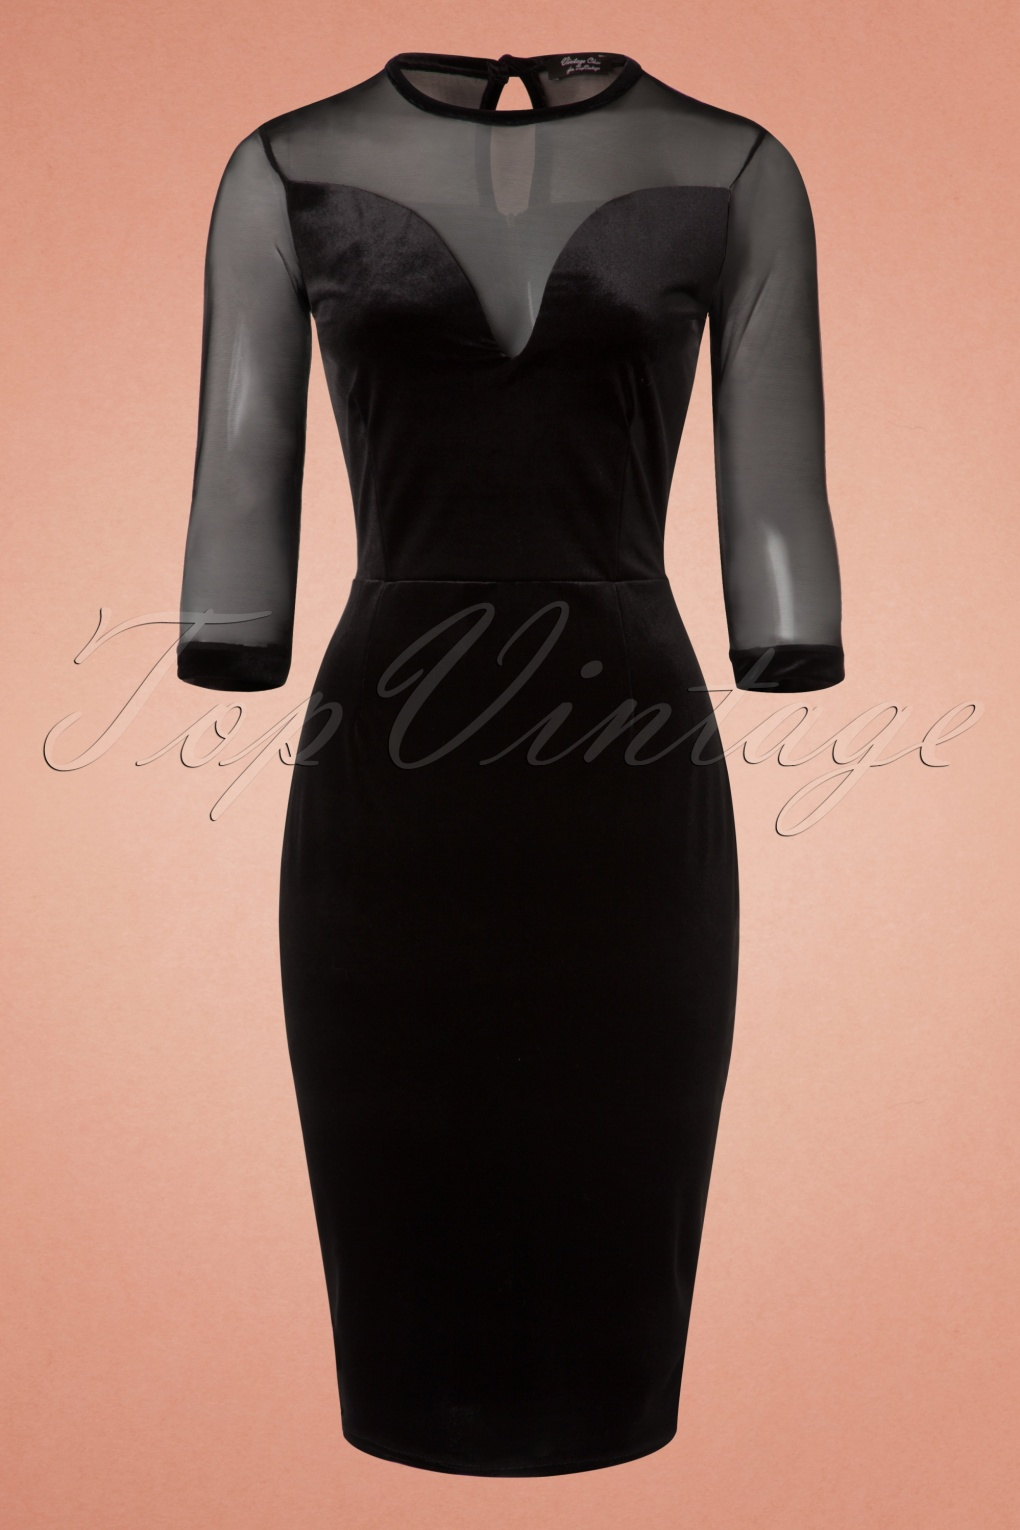 50s Verona Velvet Mesh Pencil Dress In Black